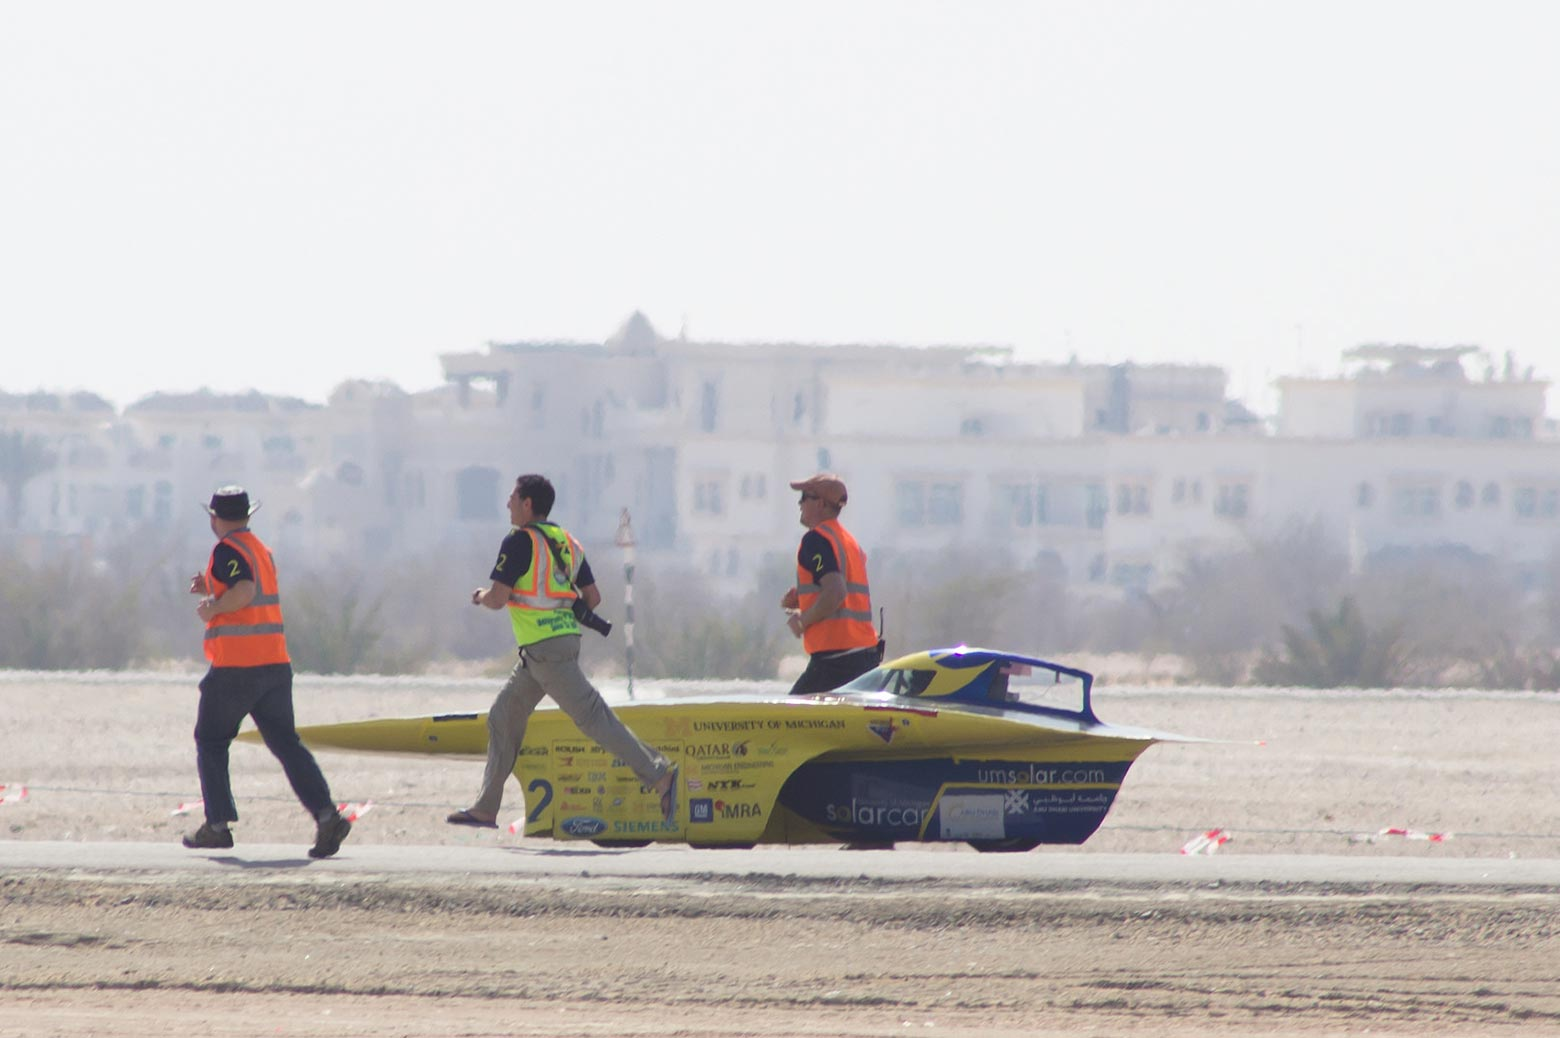 Solar car team preparing for the competition